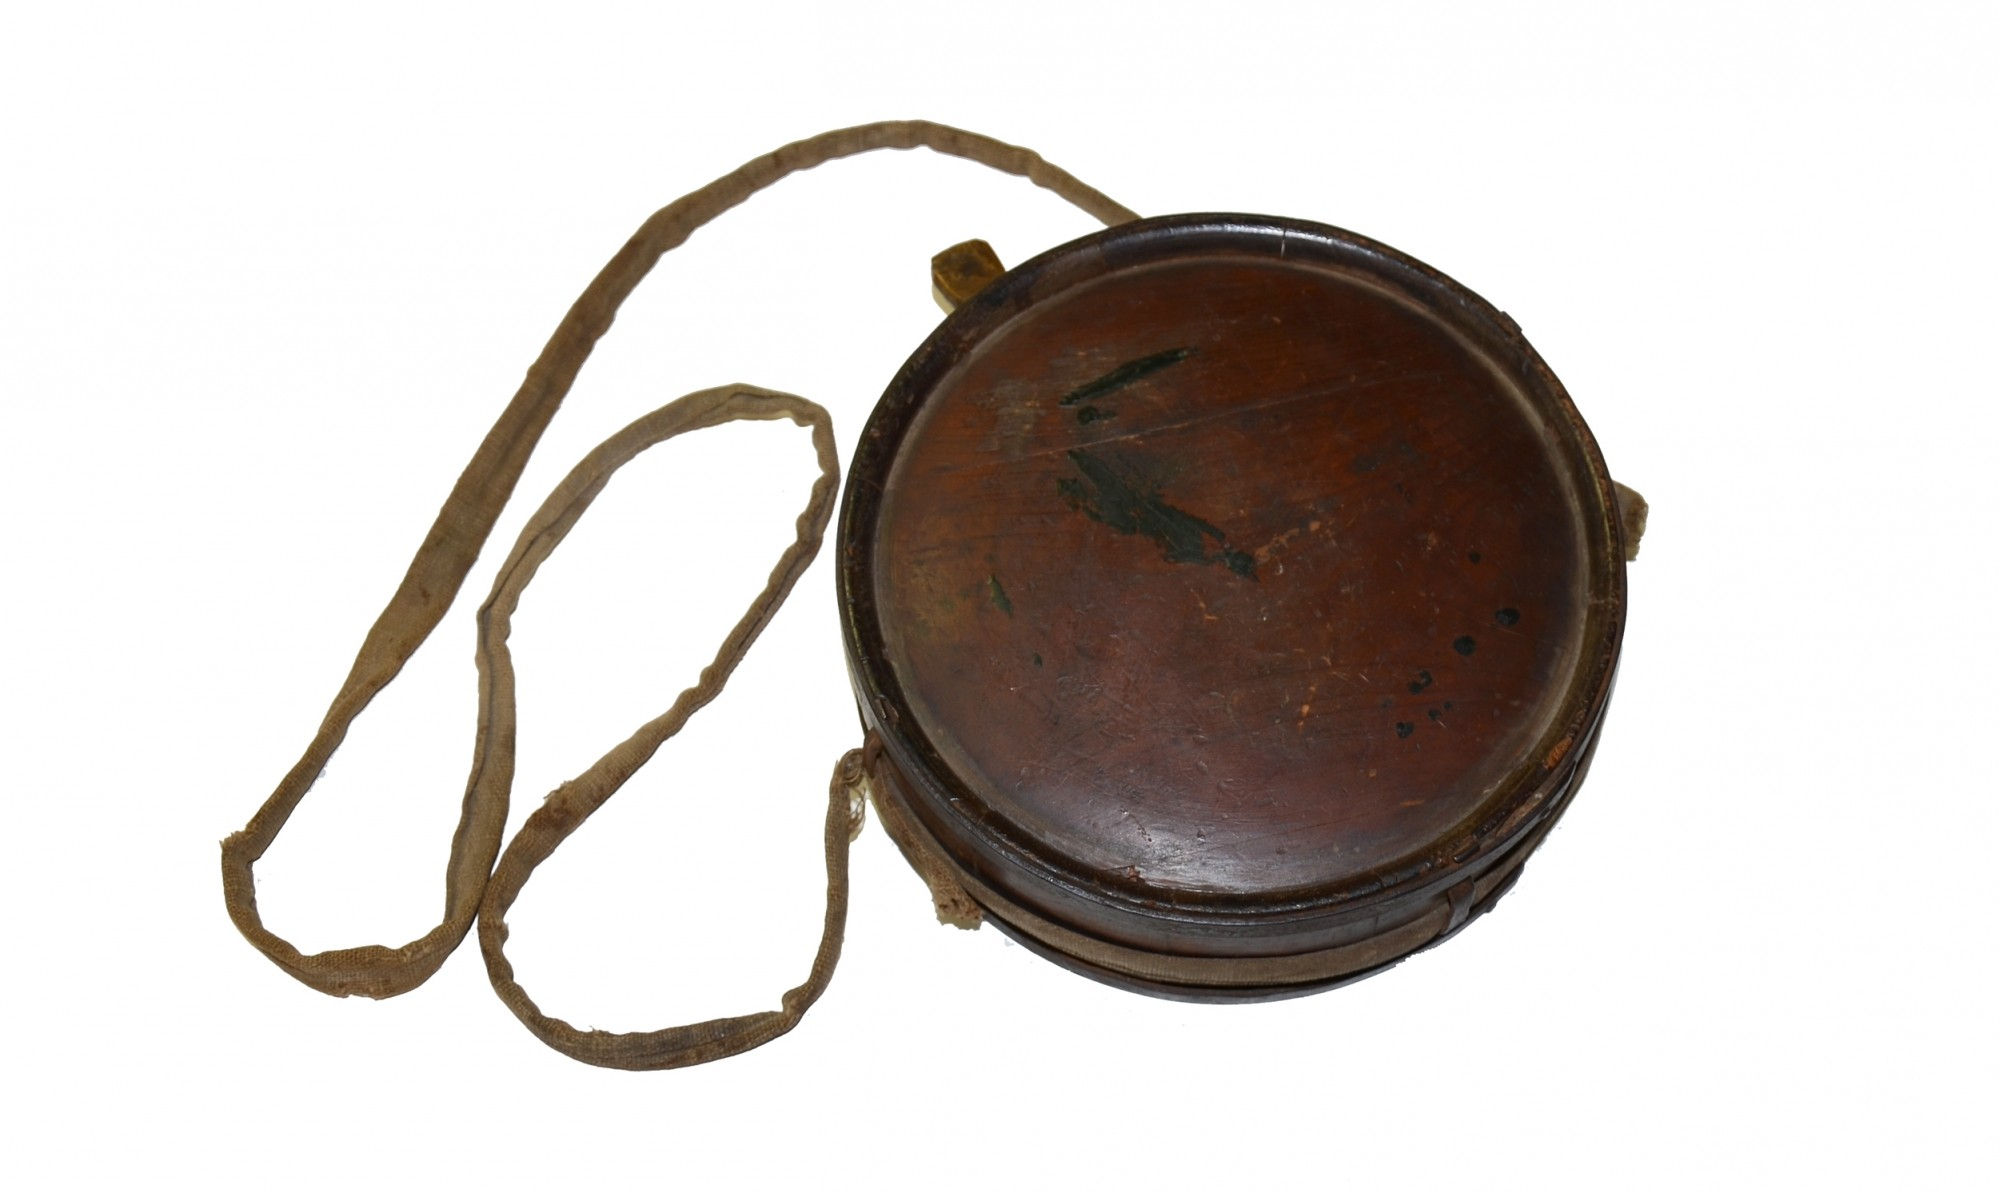 ORIGINAL, CIVIL WAR CONFEDERATE WOOD DRUM CANTEEN WITH SLING